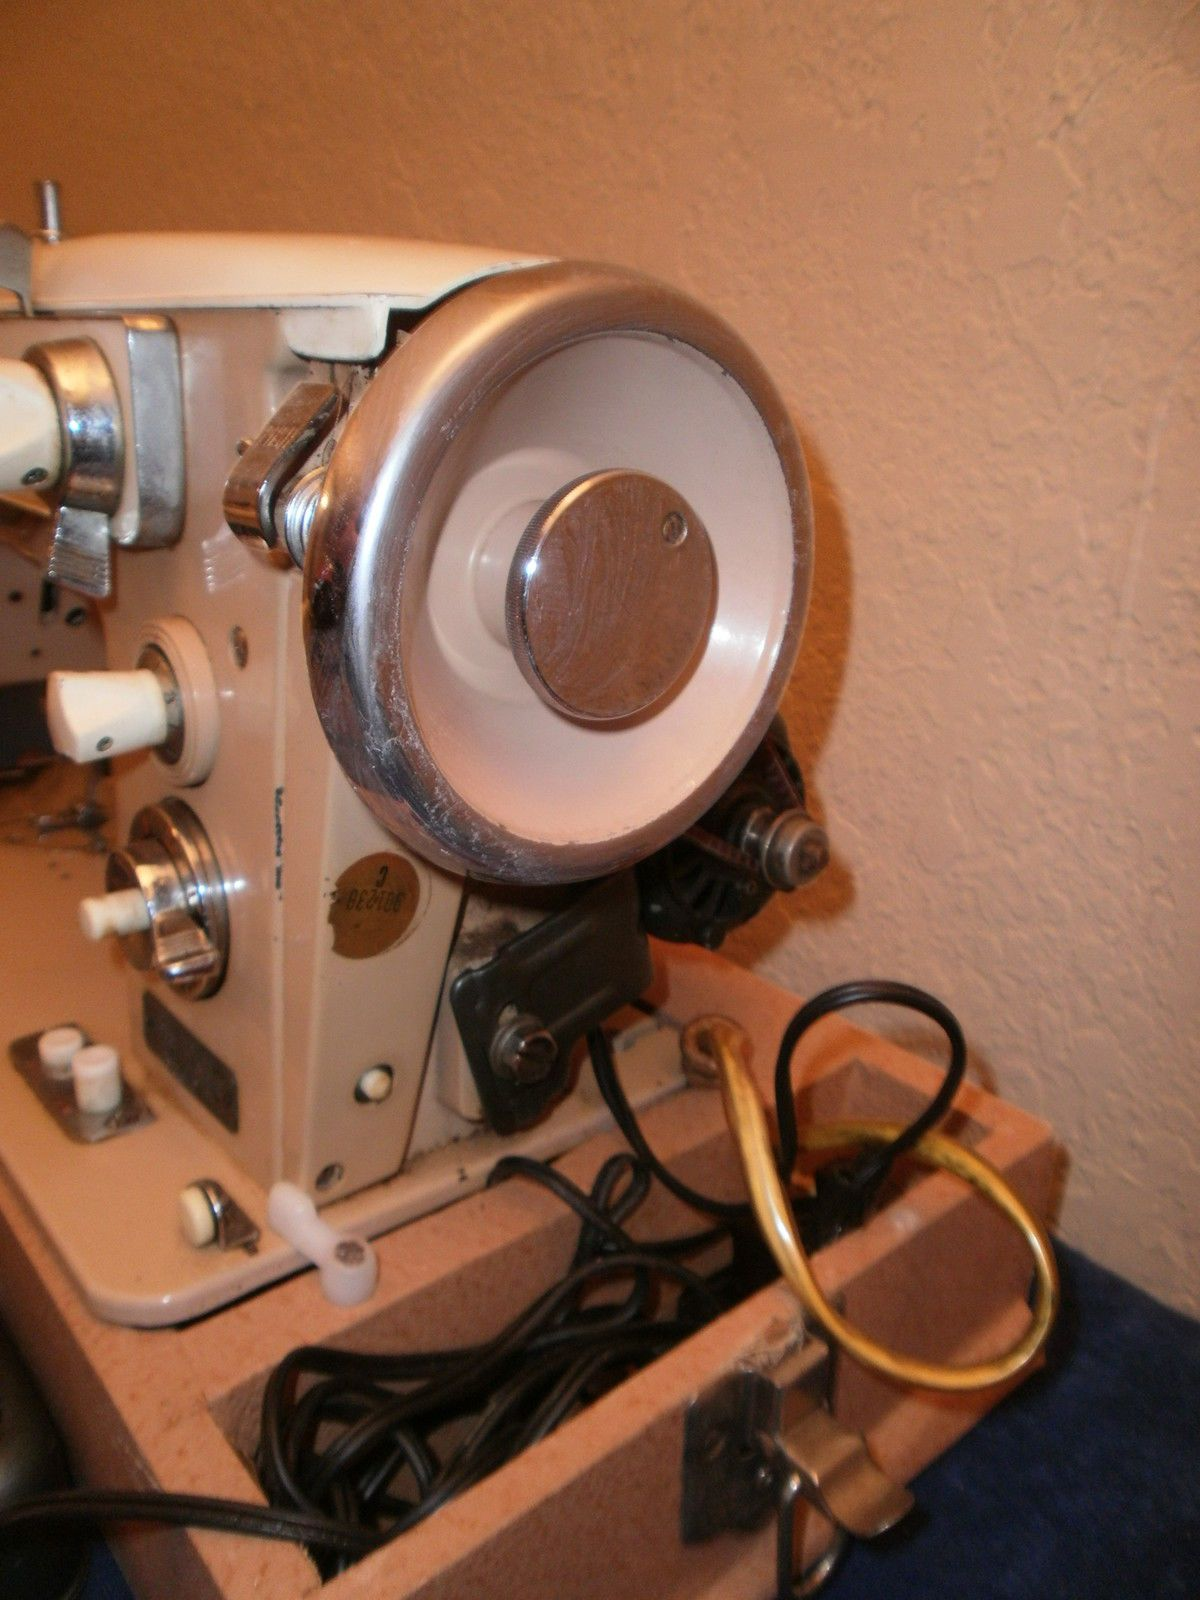 Vintage Remington Model Sam 3B Deluxe Automatic Sewing